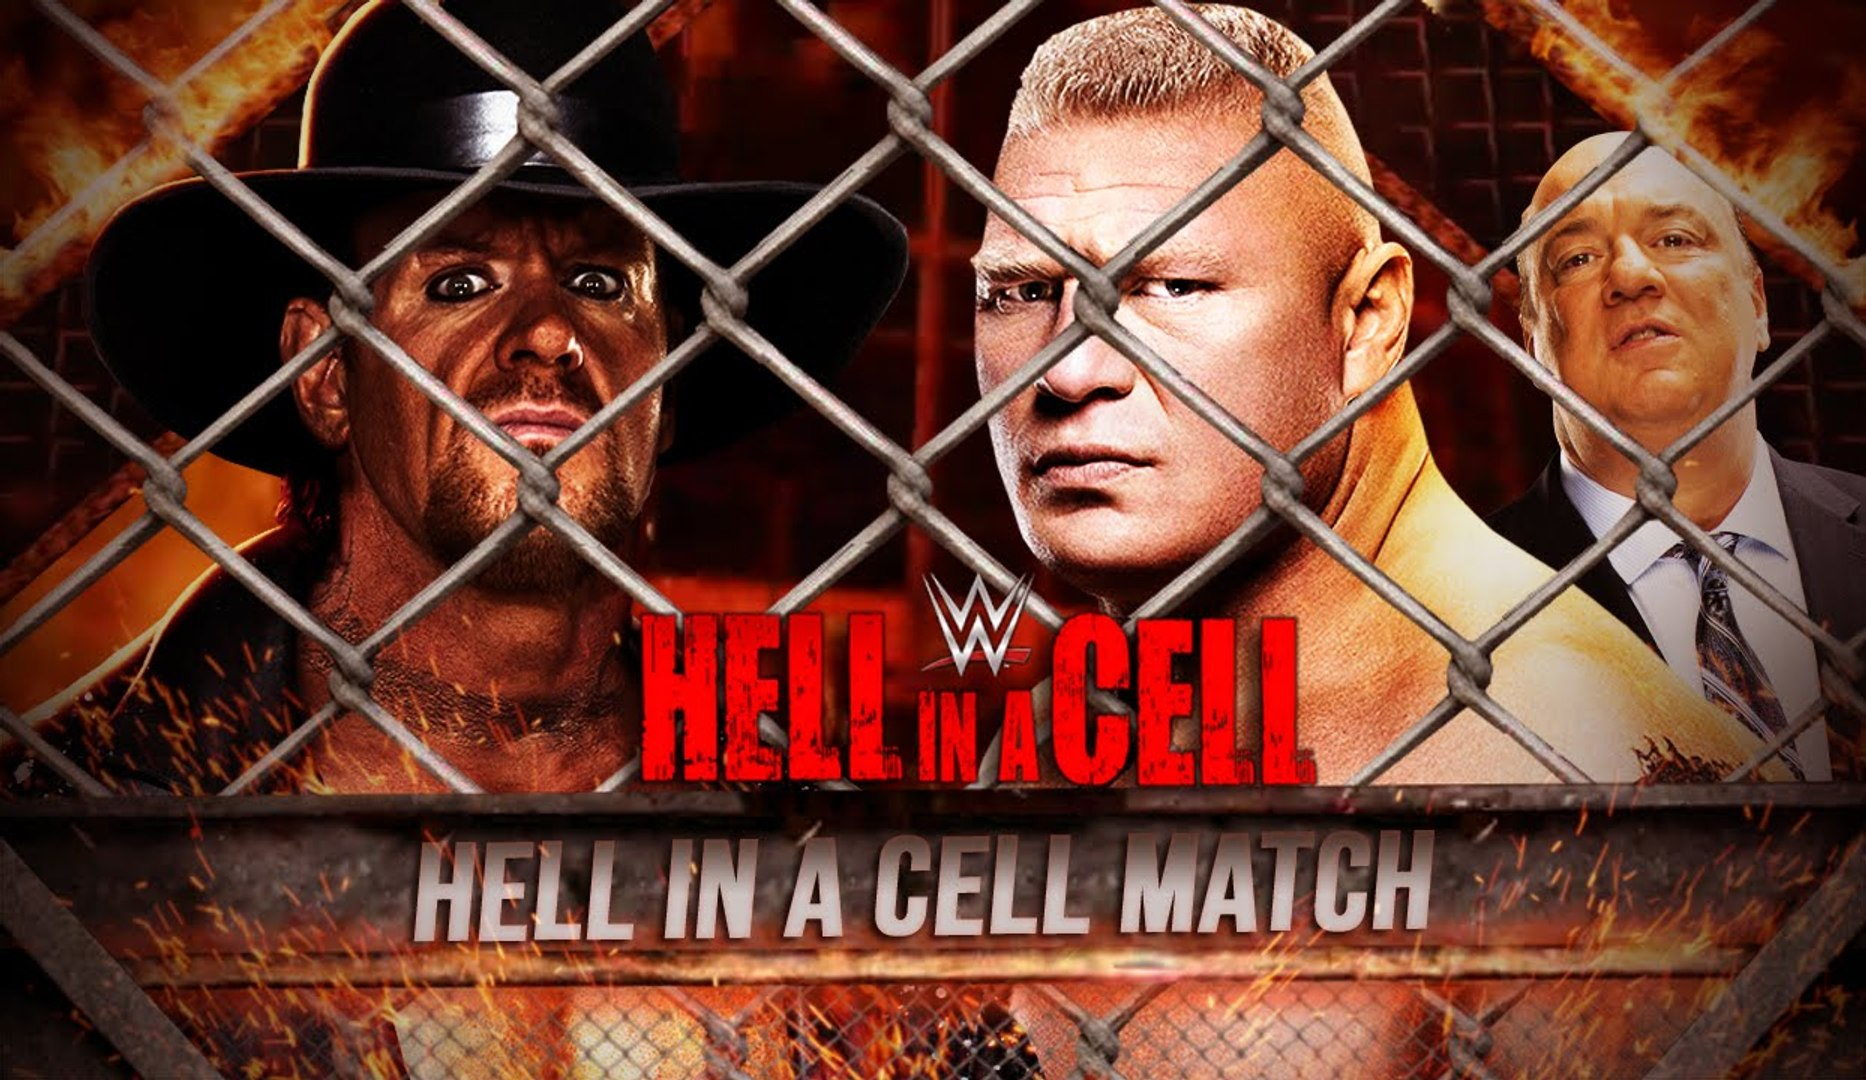 WWE Hell in a Cell 2015 - Promo - Undertaker vs Brock Lesnar